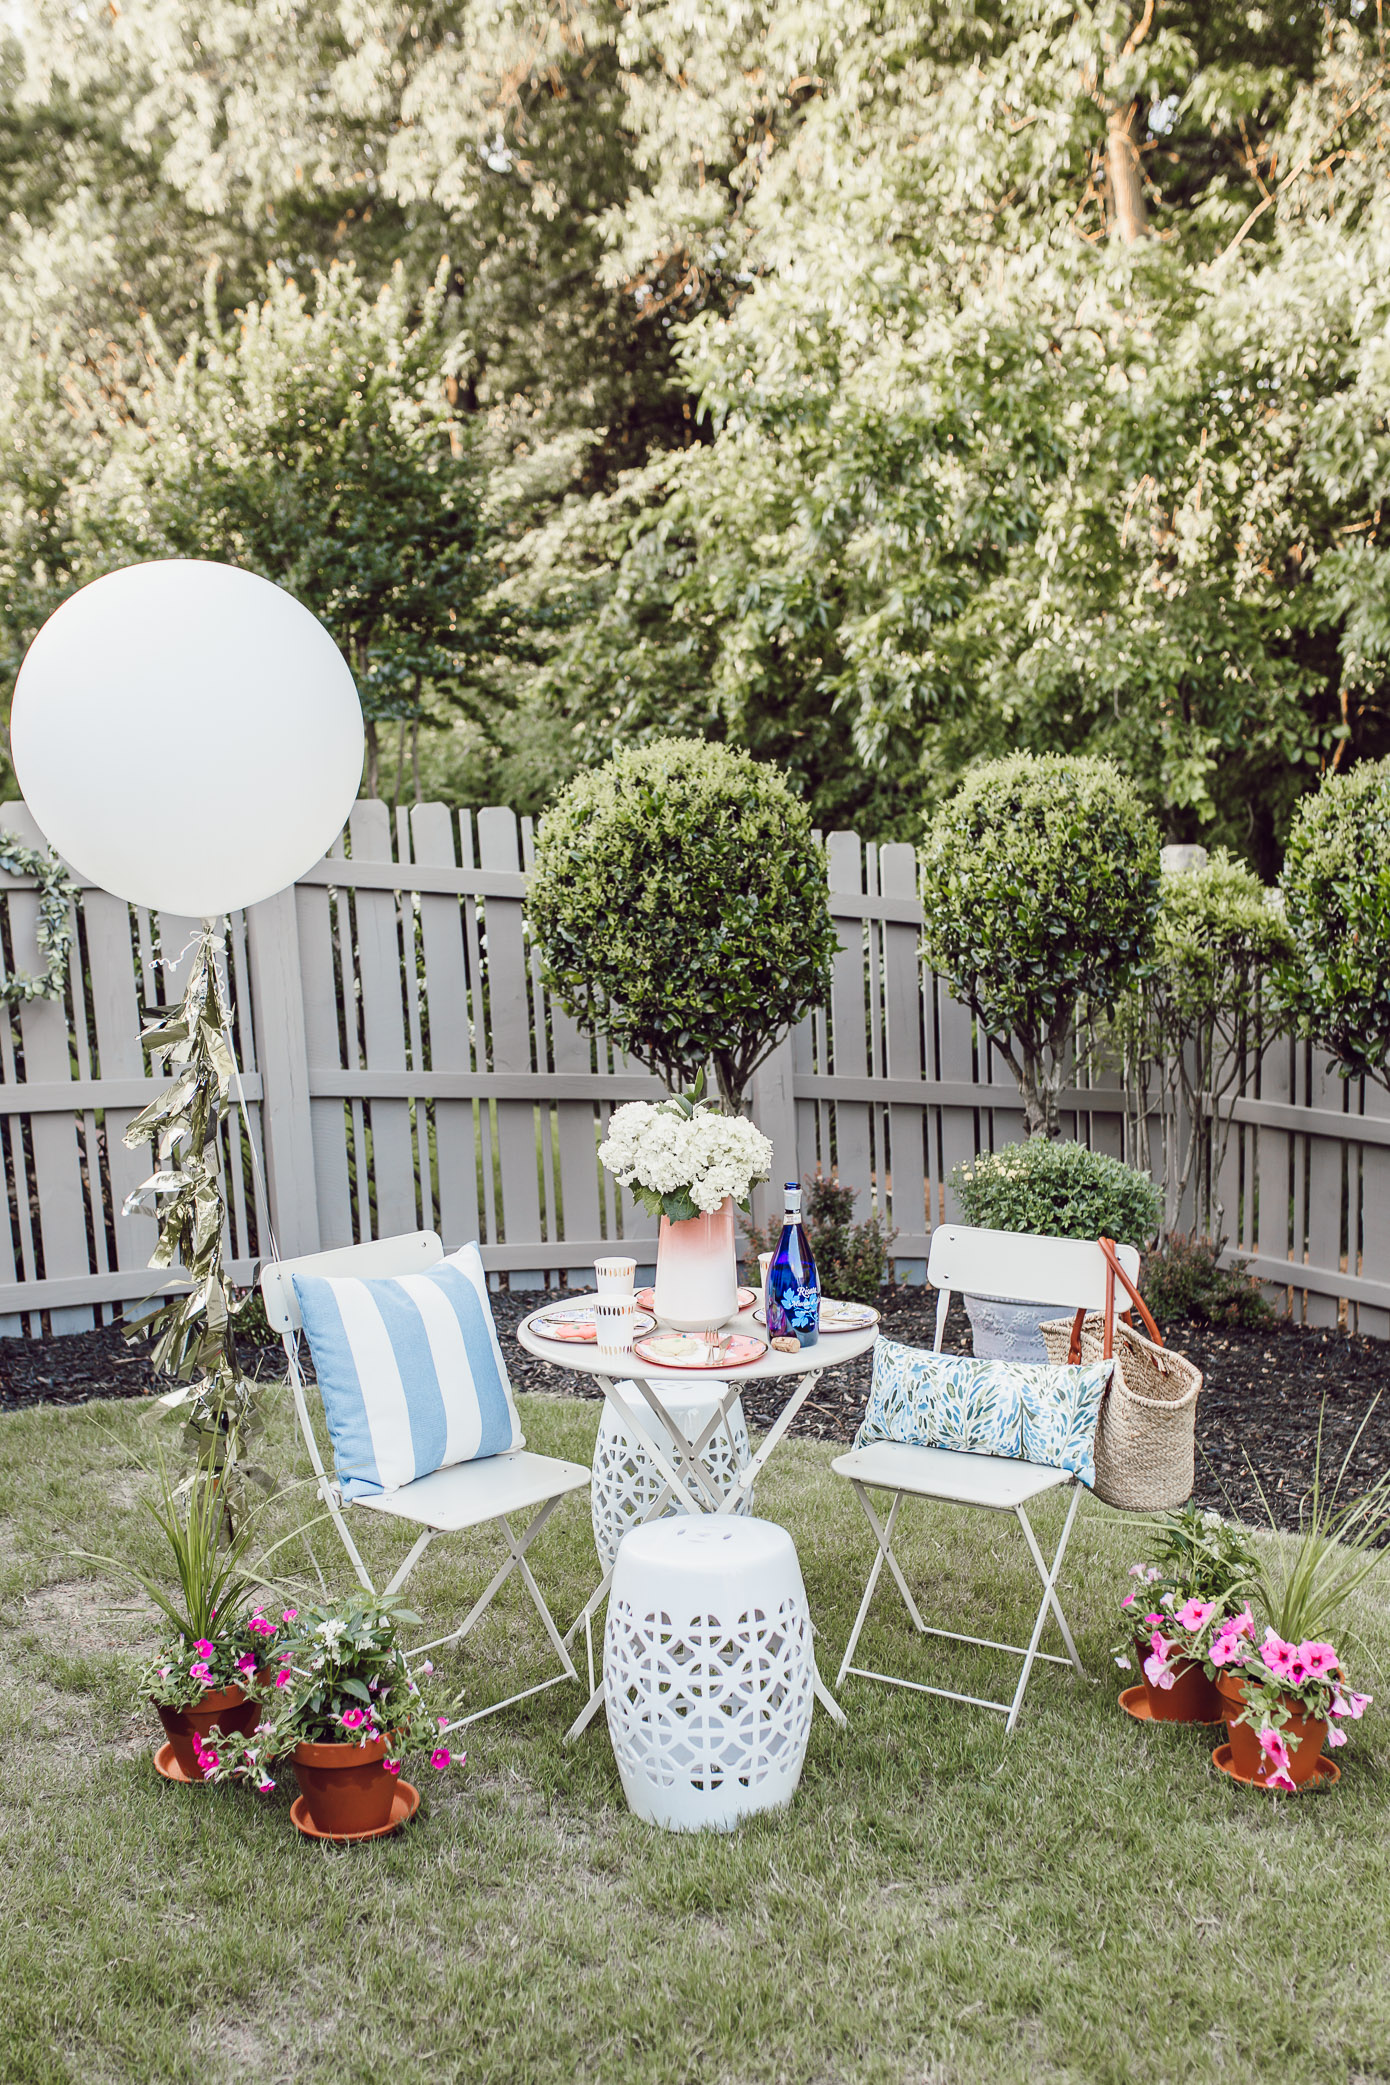 How to Decorate Your Backyard for Garden Party | Louella Reese